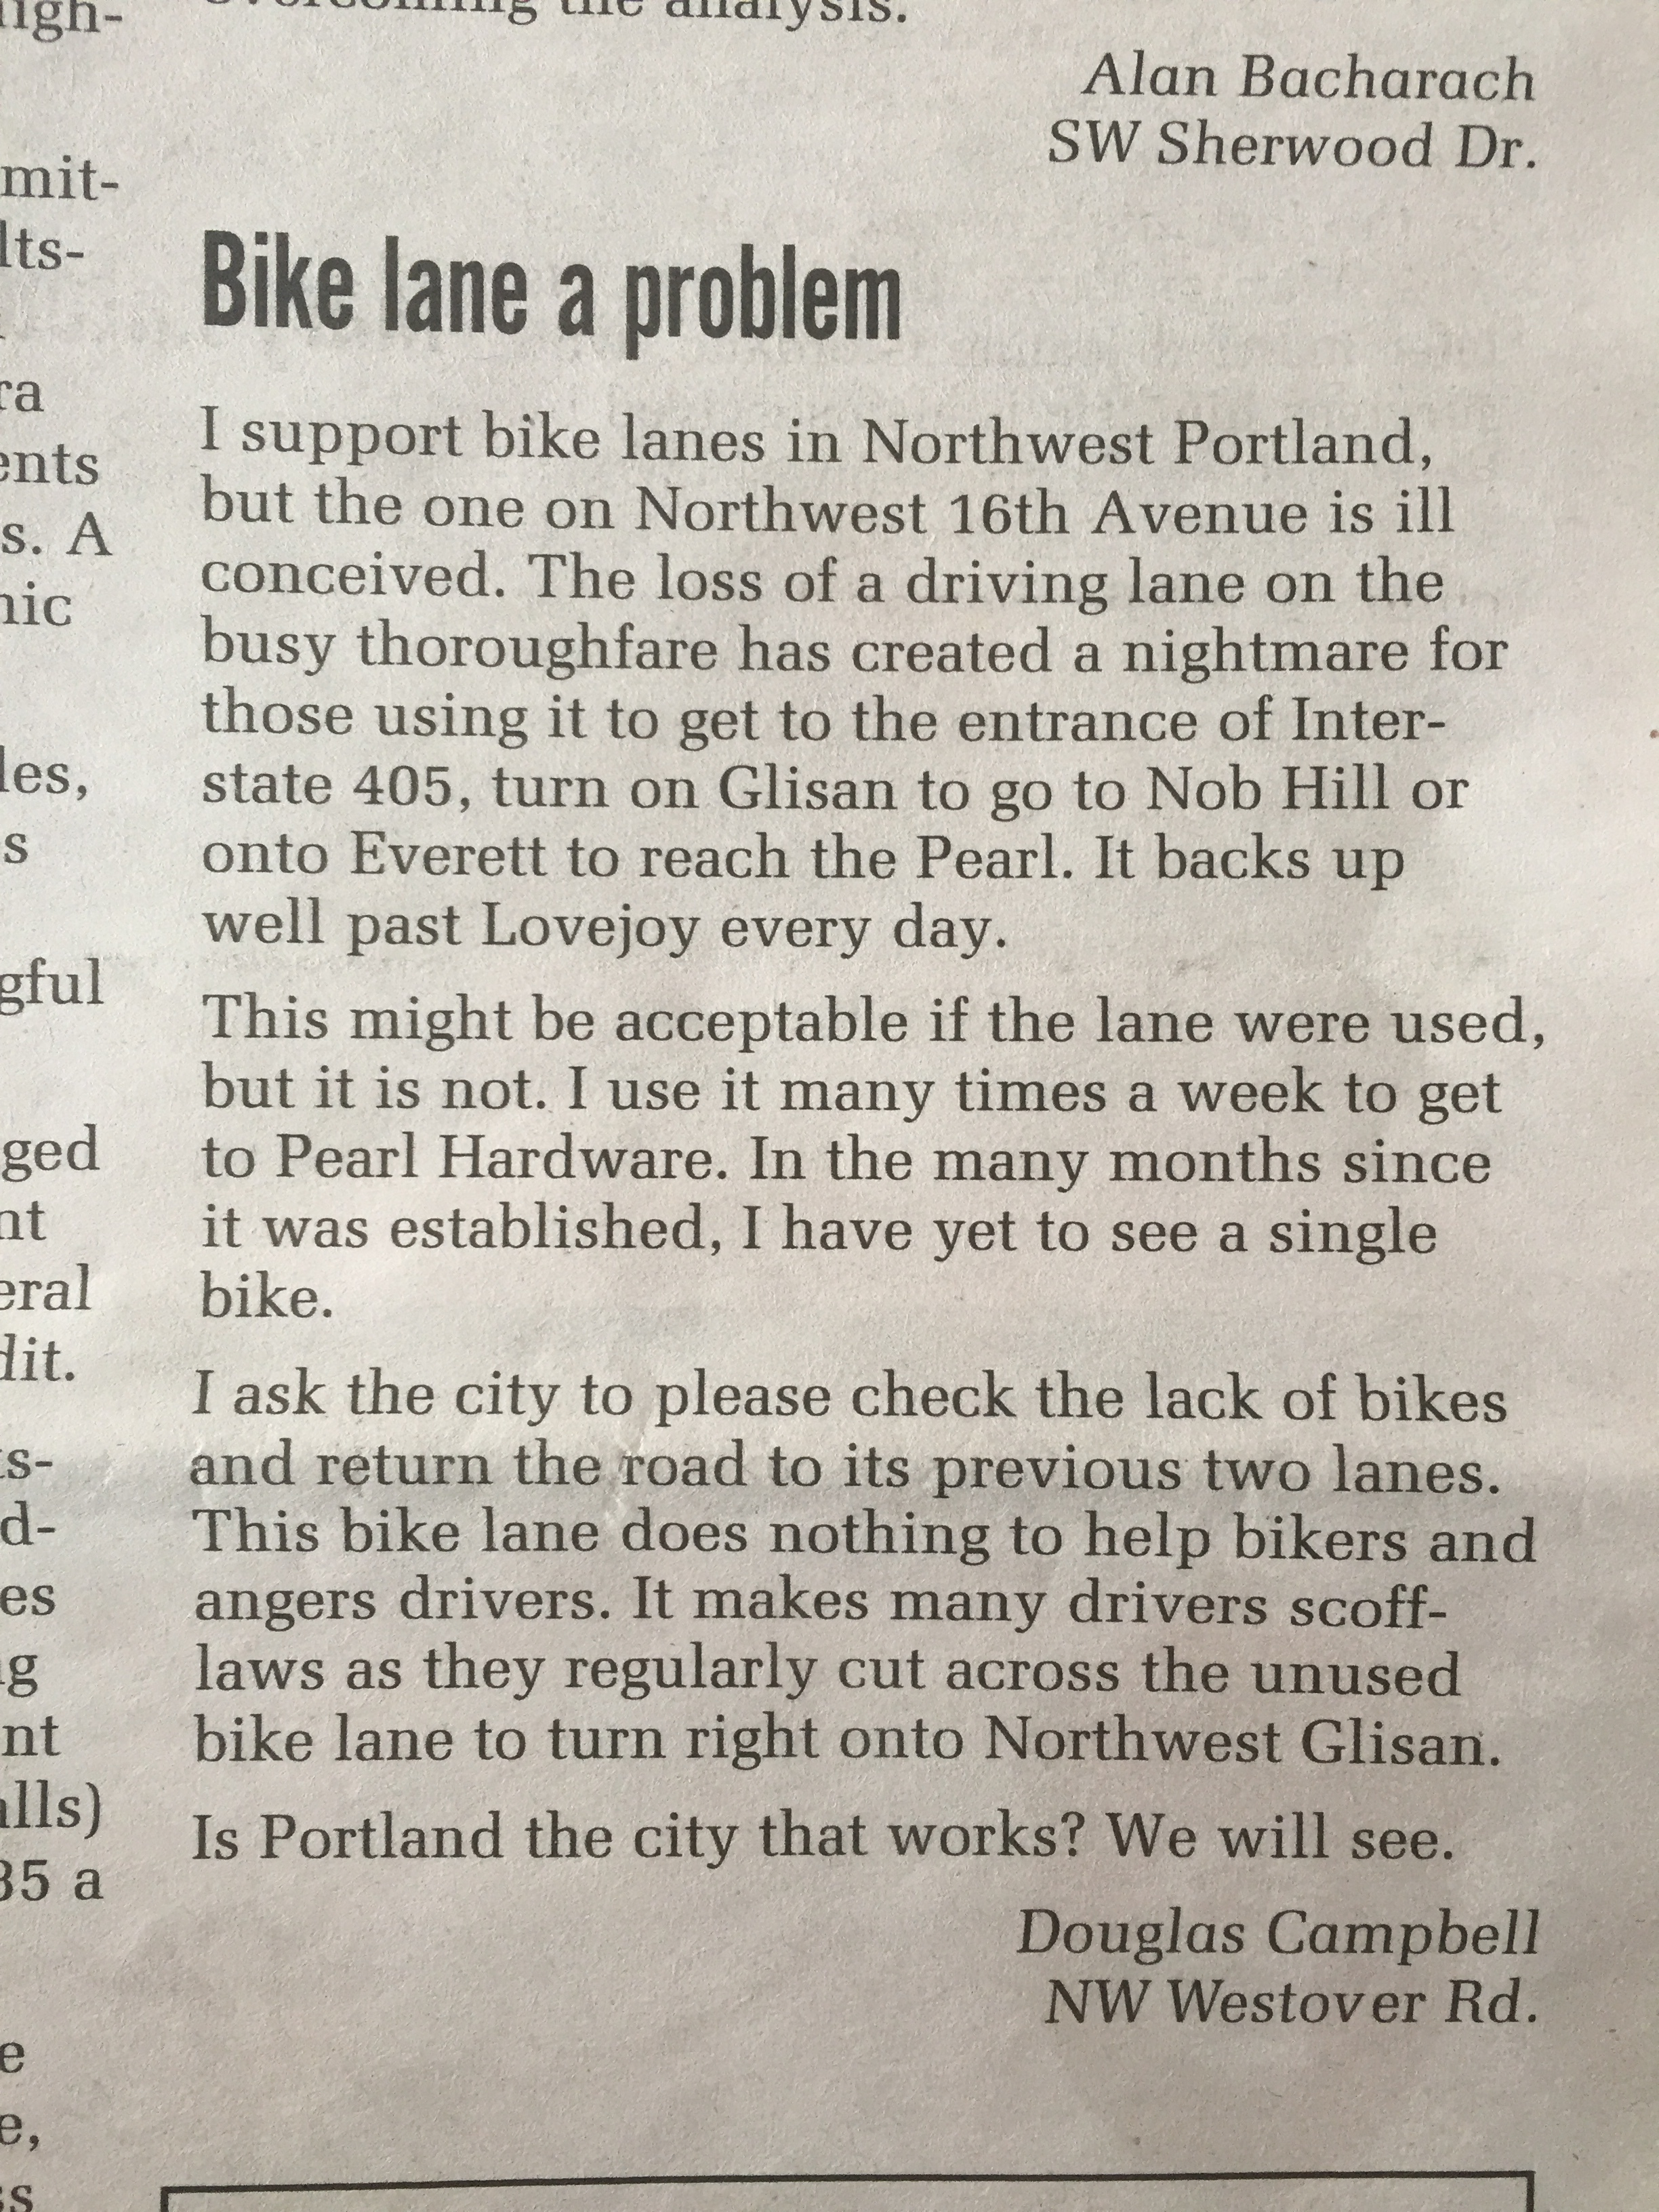 """if this is the mentality of """"someone that supports bike lanes"""" then we're in big trouble (letter to Portland's NW Examiner newspaper, January 2018)"""